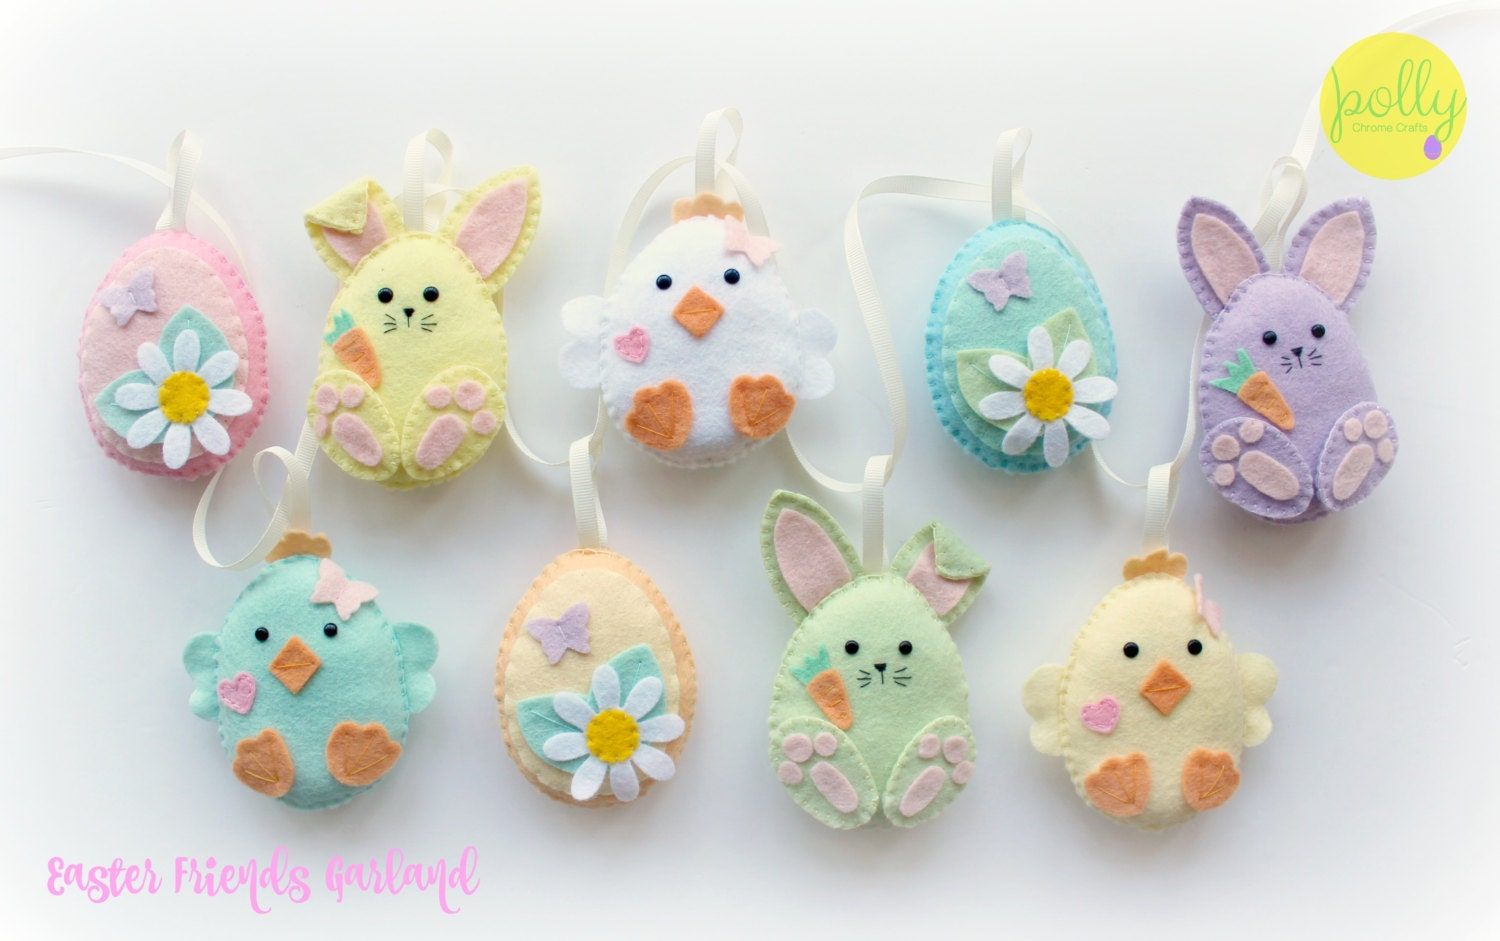 Felt Easter Friends Garland Handmade Set Of 9 Easter